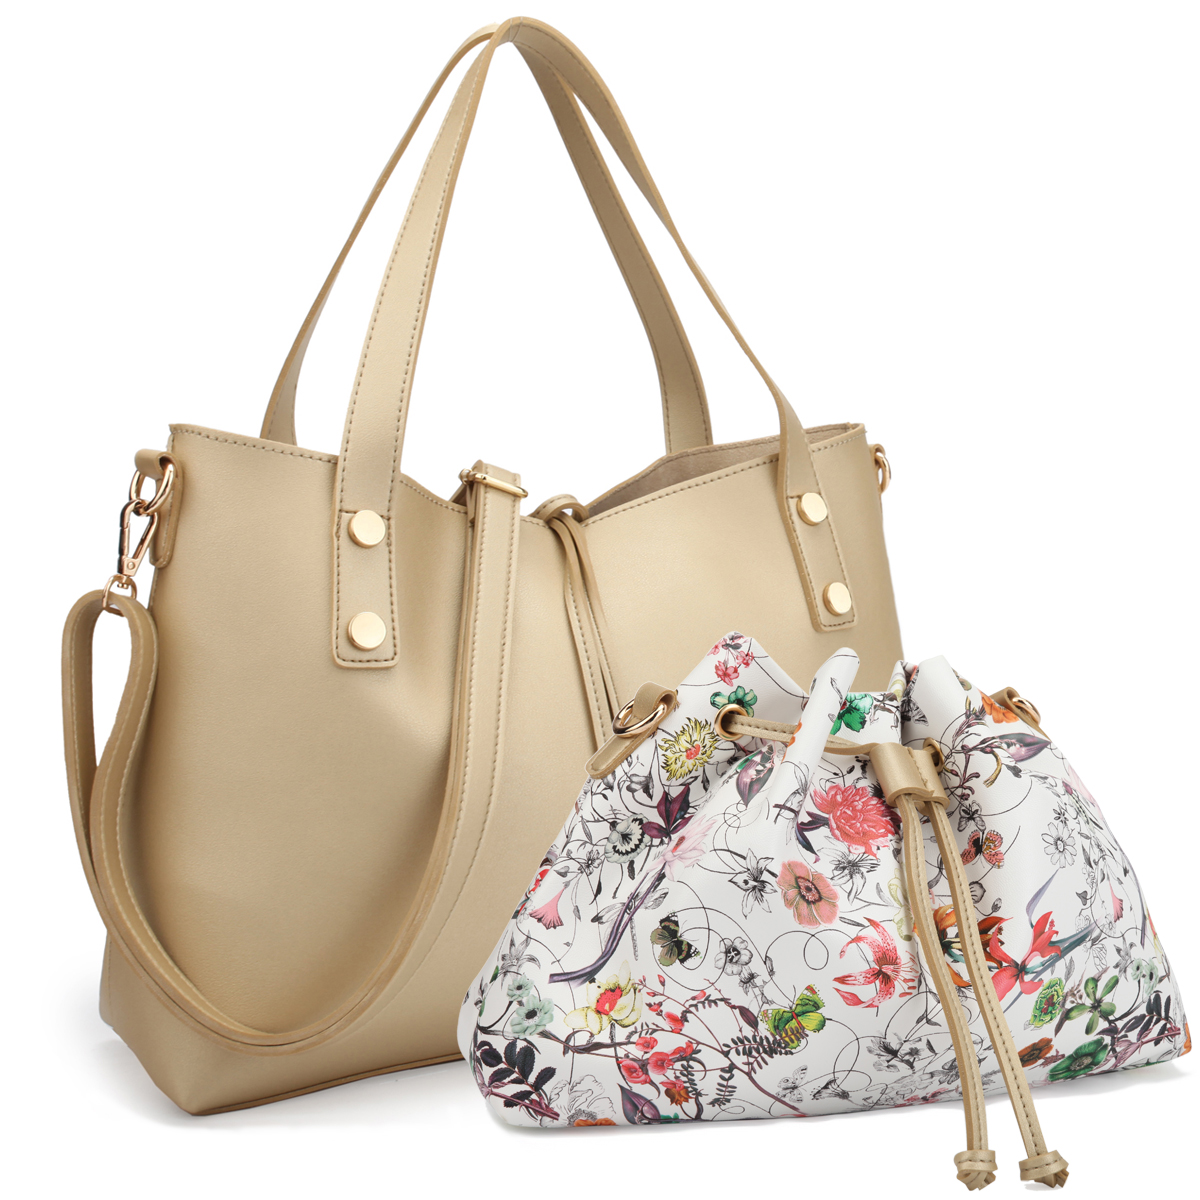 Dasein Faux Leather Soft Tote with Detachable Cross body Flowery Bucket Bag Inside